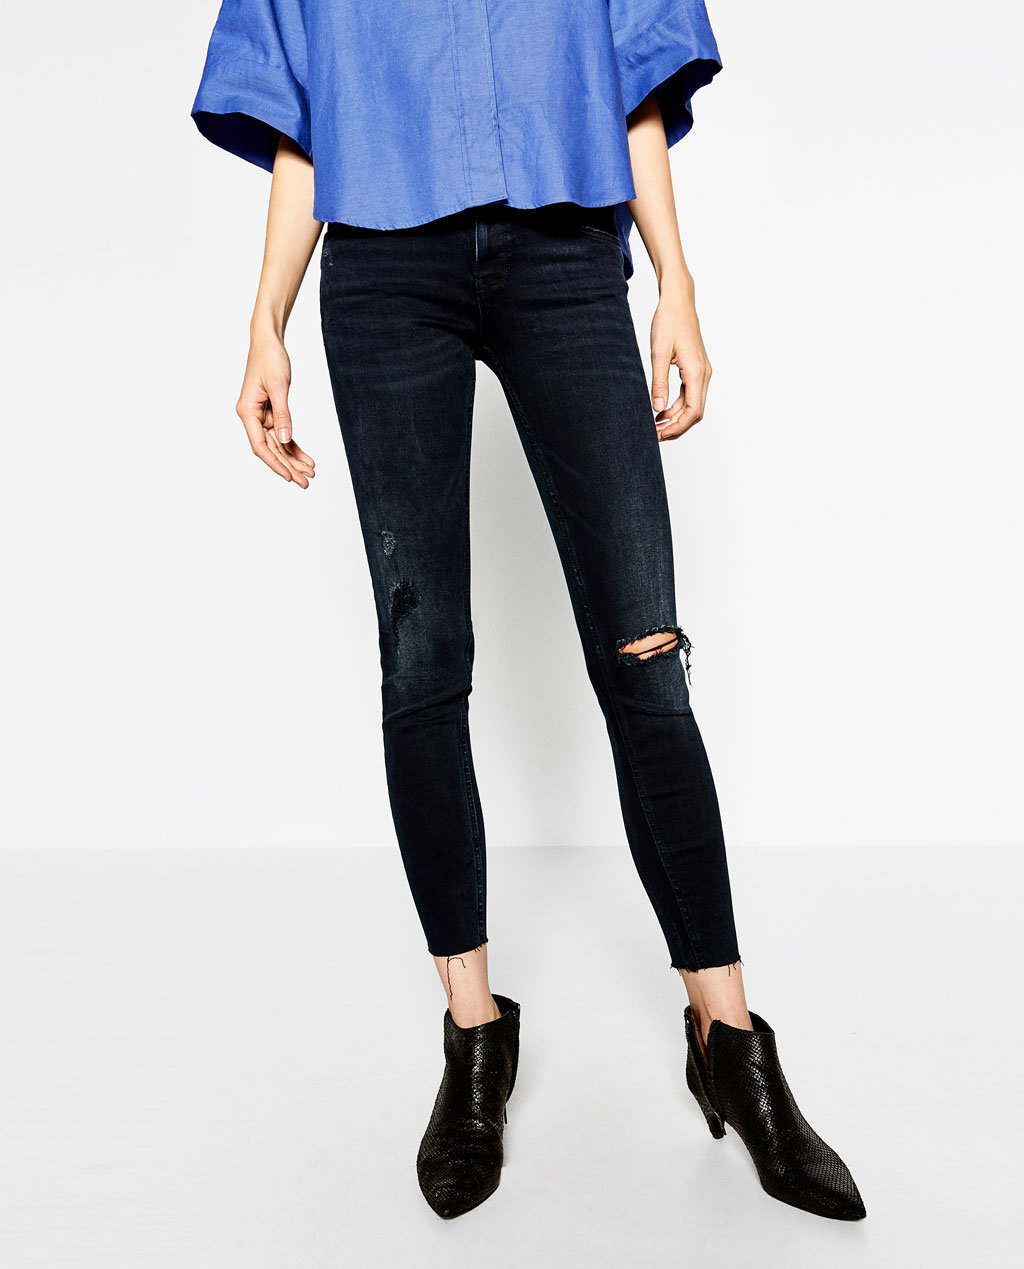 Fashioned Women Skinny Pant with Holes